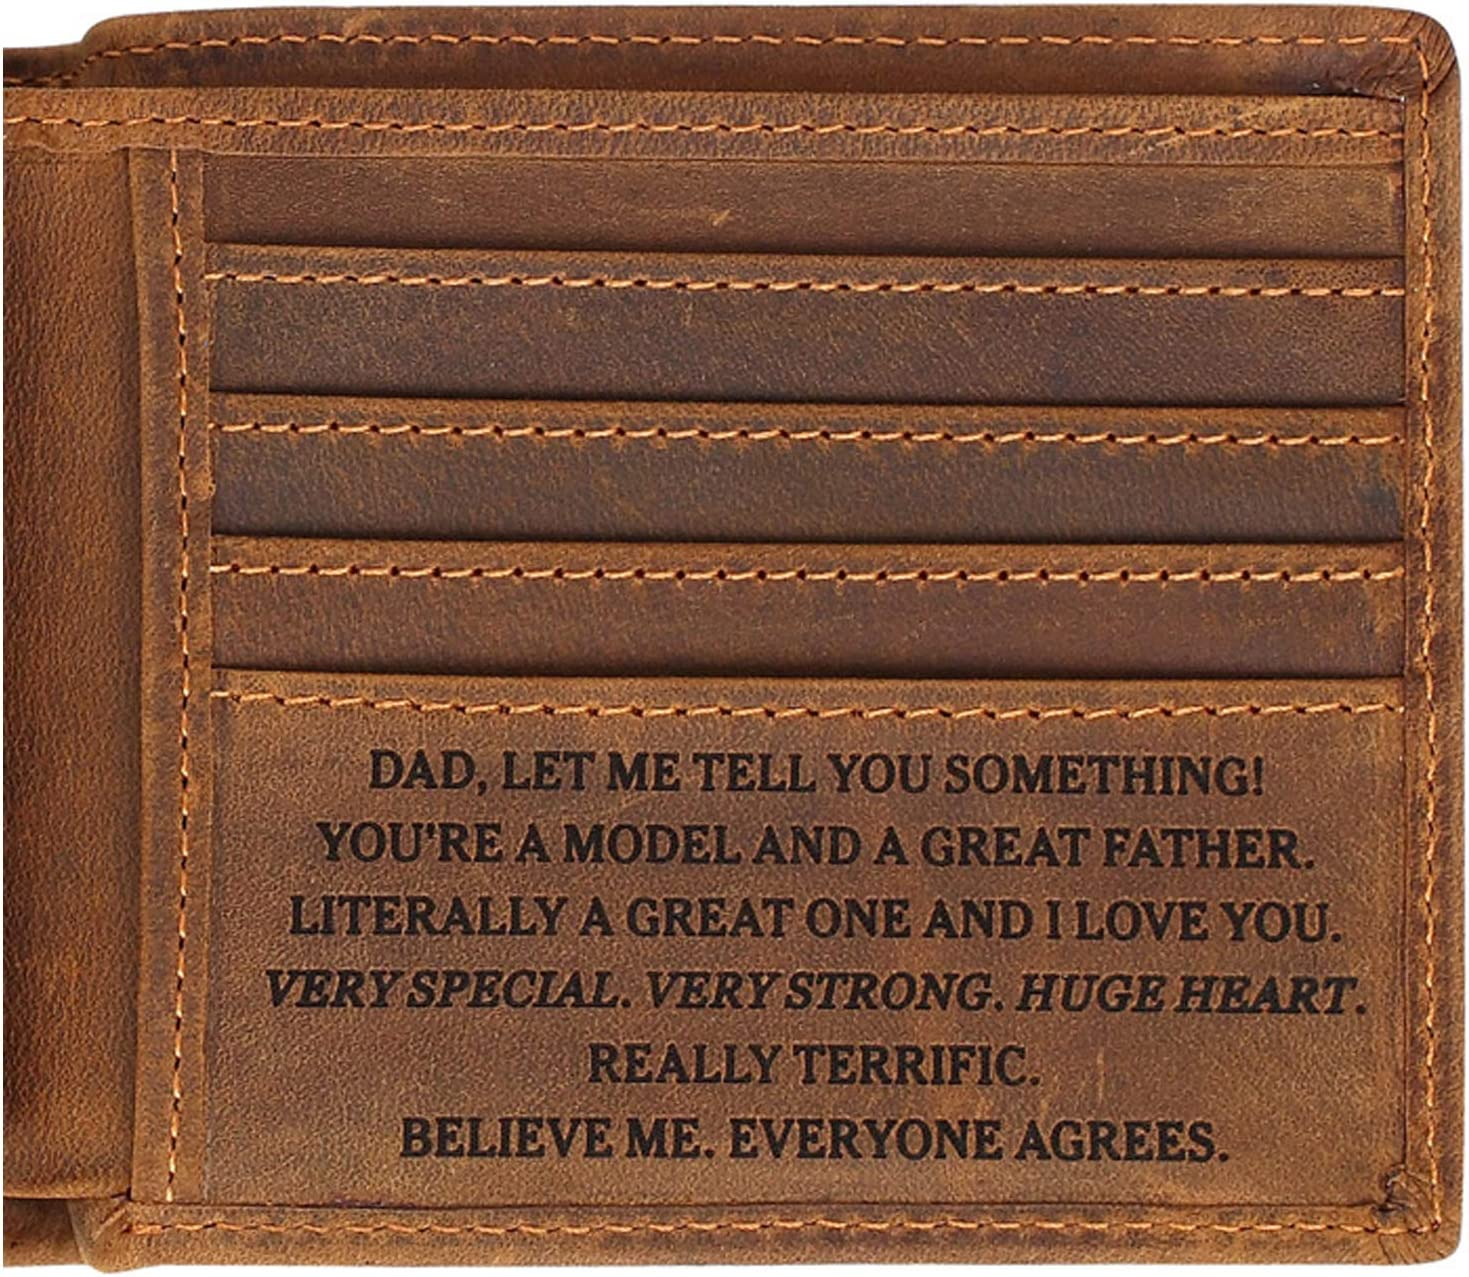 Father's Wallets - Customized Engraved Leather Men Wallet - Personalized Unique Gift For Dad As Anniversary, Birthday, Christmas and Father's Day Gift